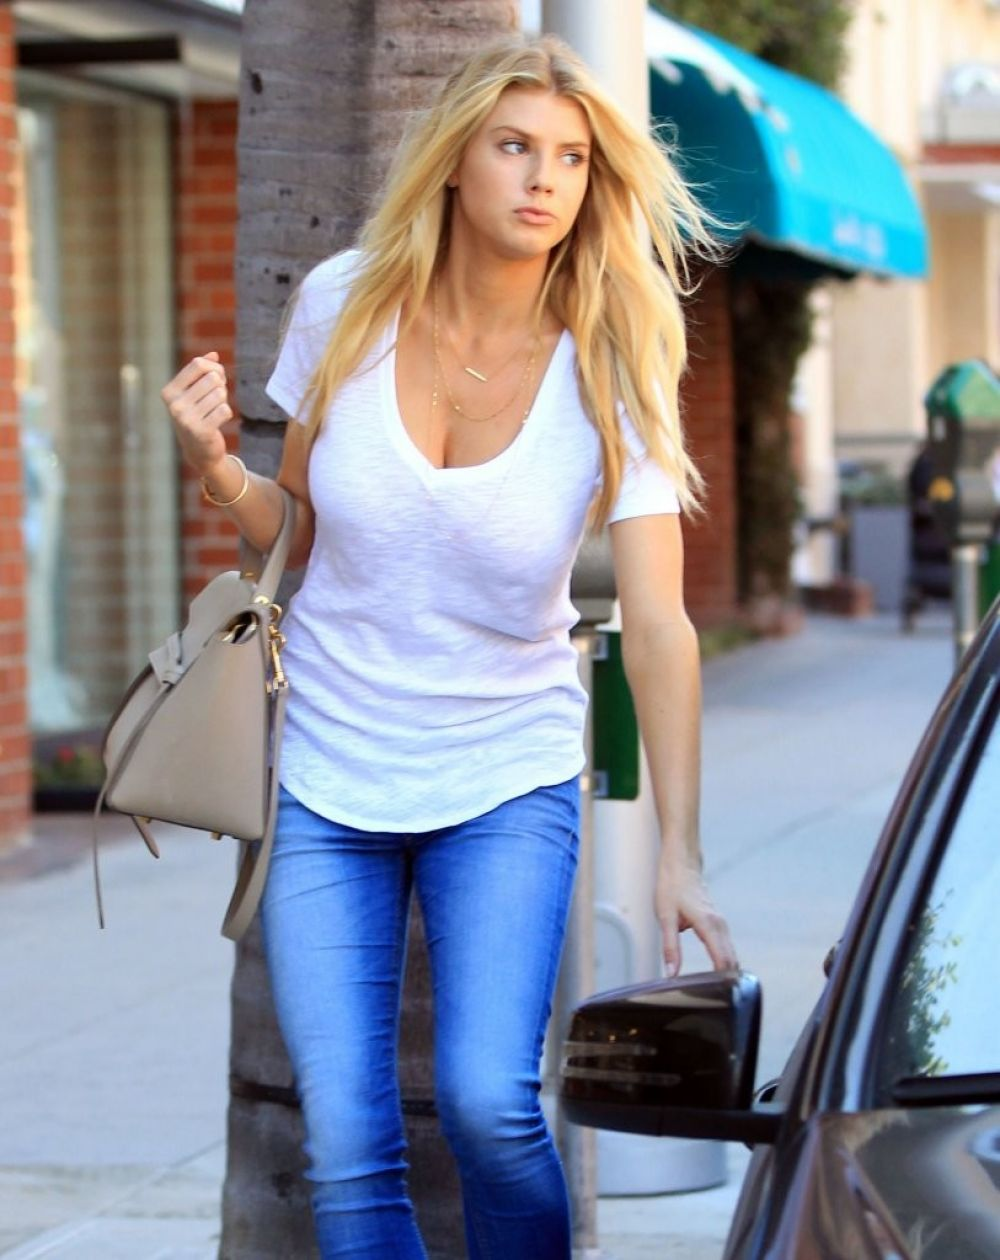 CHARLOTTE MCKINNEY in Jeans Out Shopping in Beverly Hills 08/04/2015